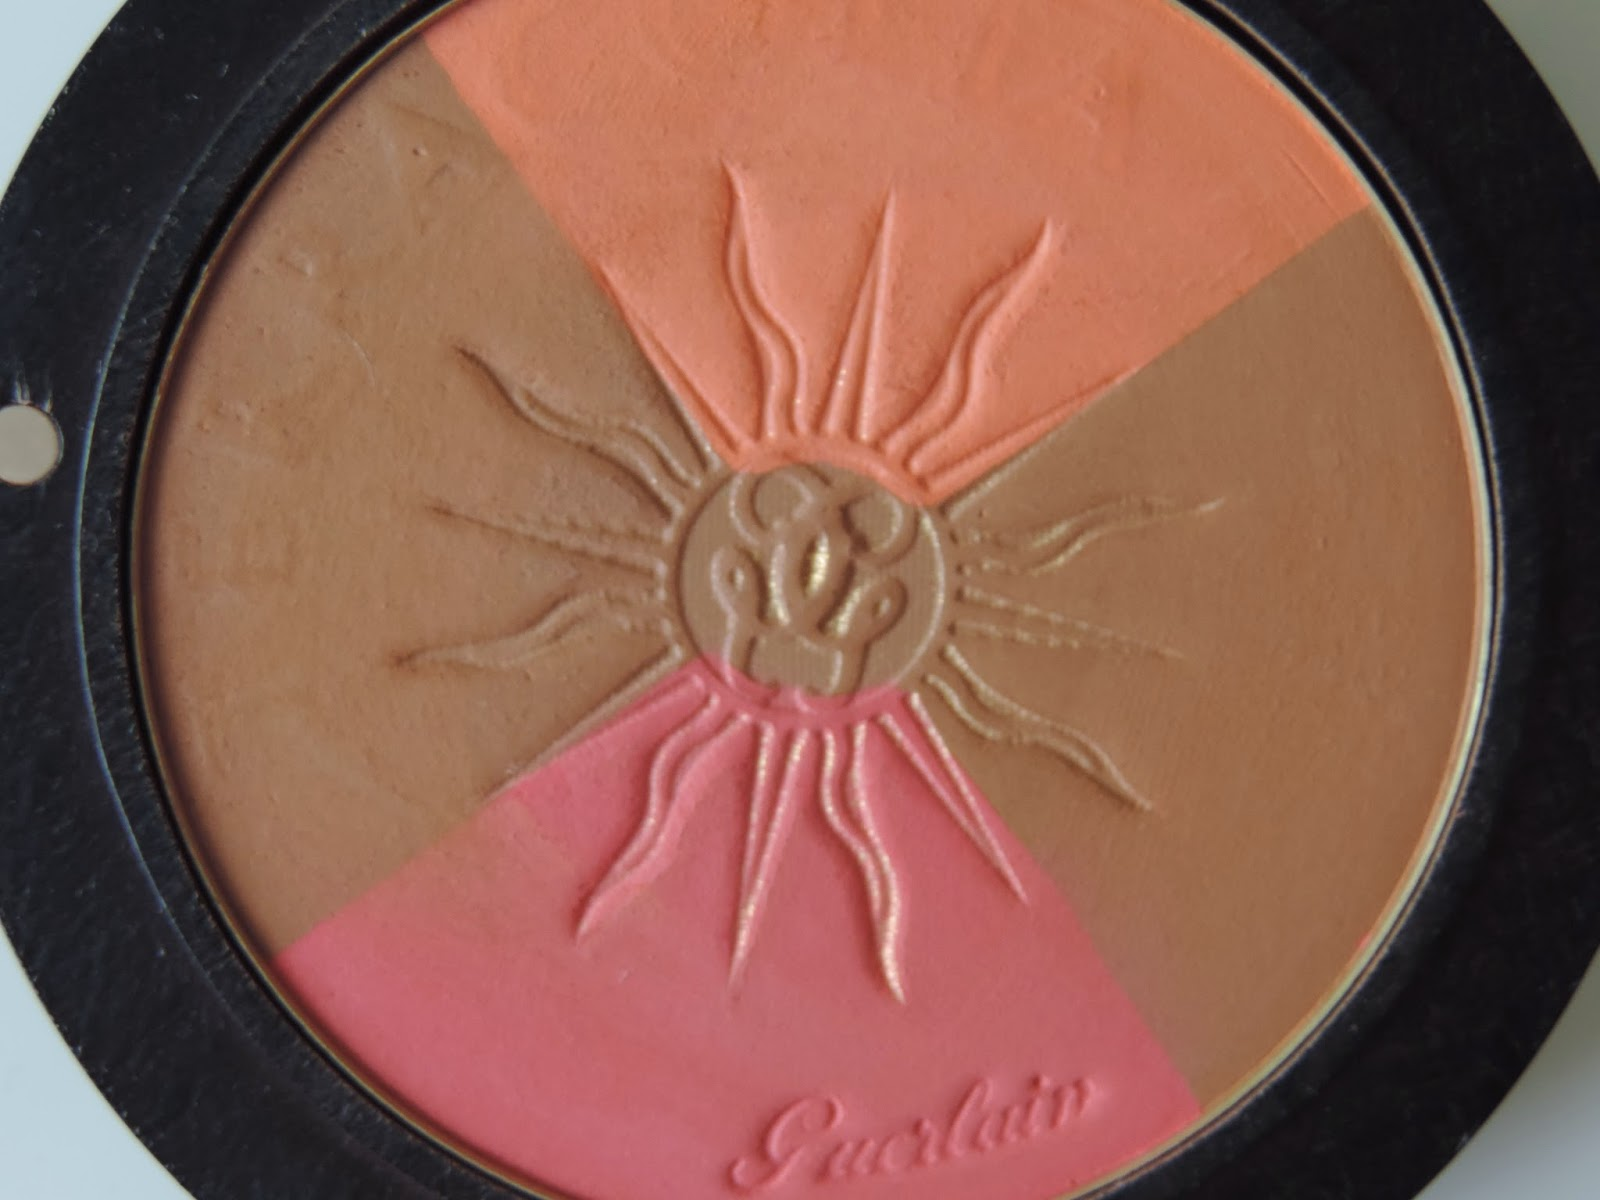 Guerlain Terracotta Sun Celebration Bronzing Powder & Blush